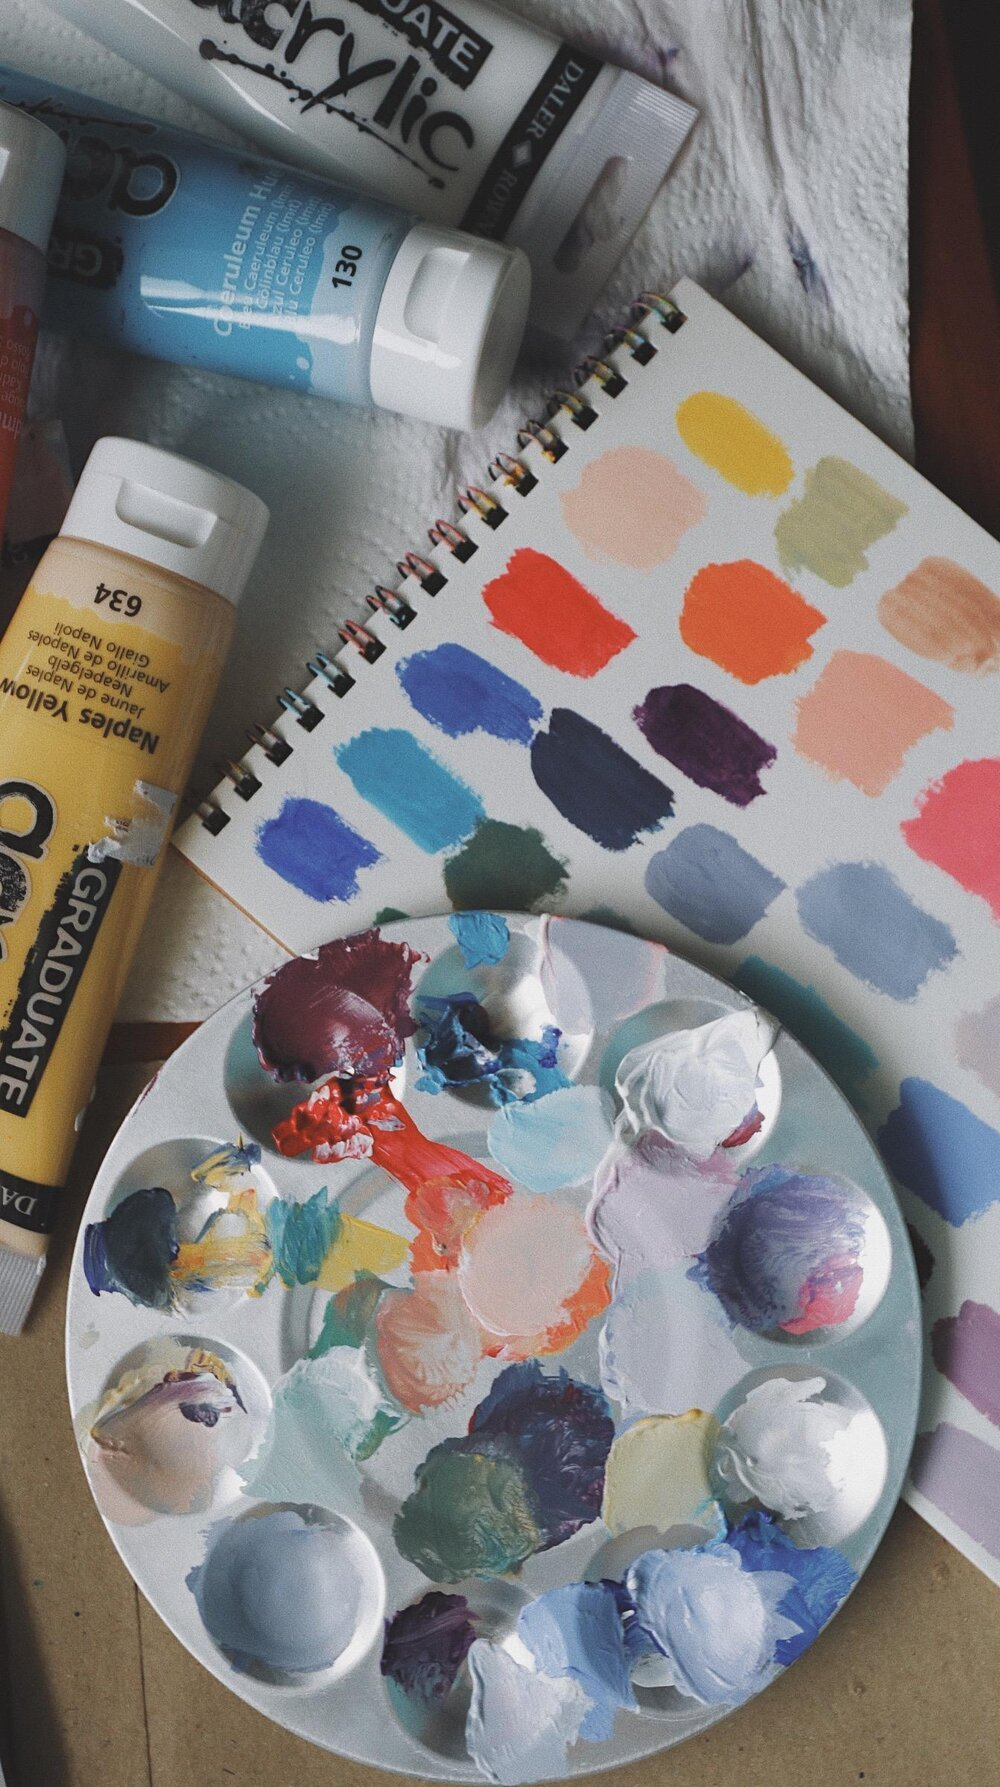 Photo from Skillshare student Pam L. for    Acrylic Painting: Learn the Basics For Beginners.